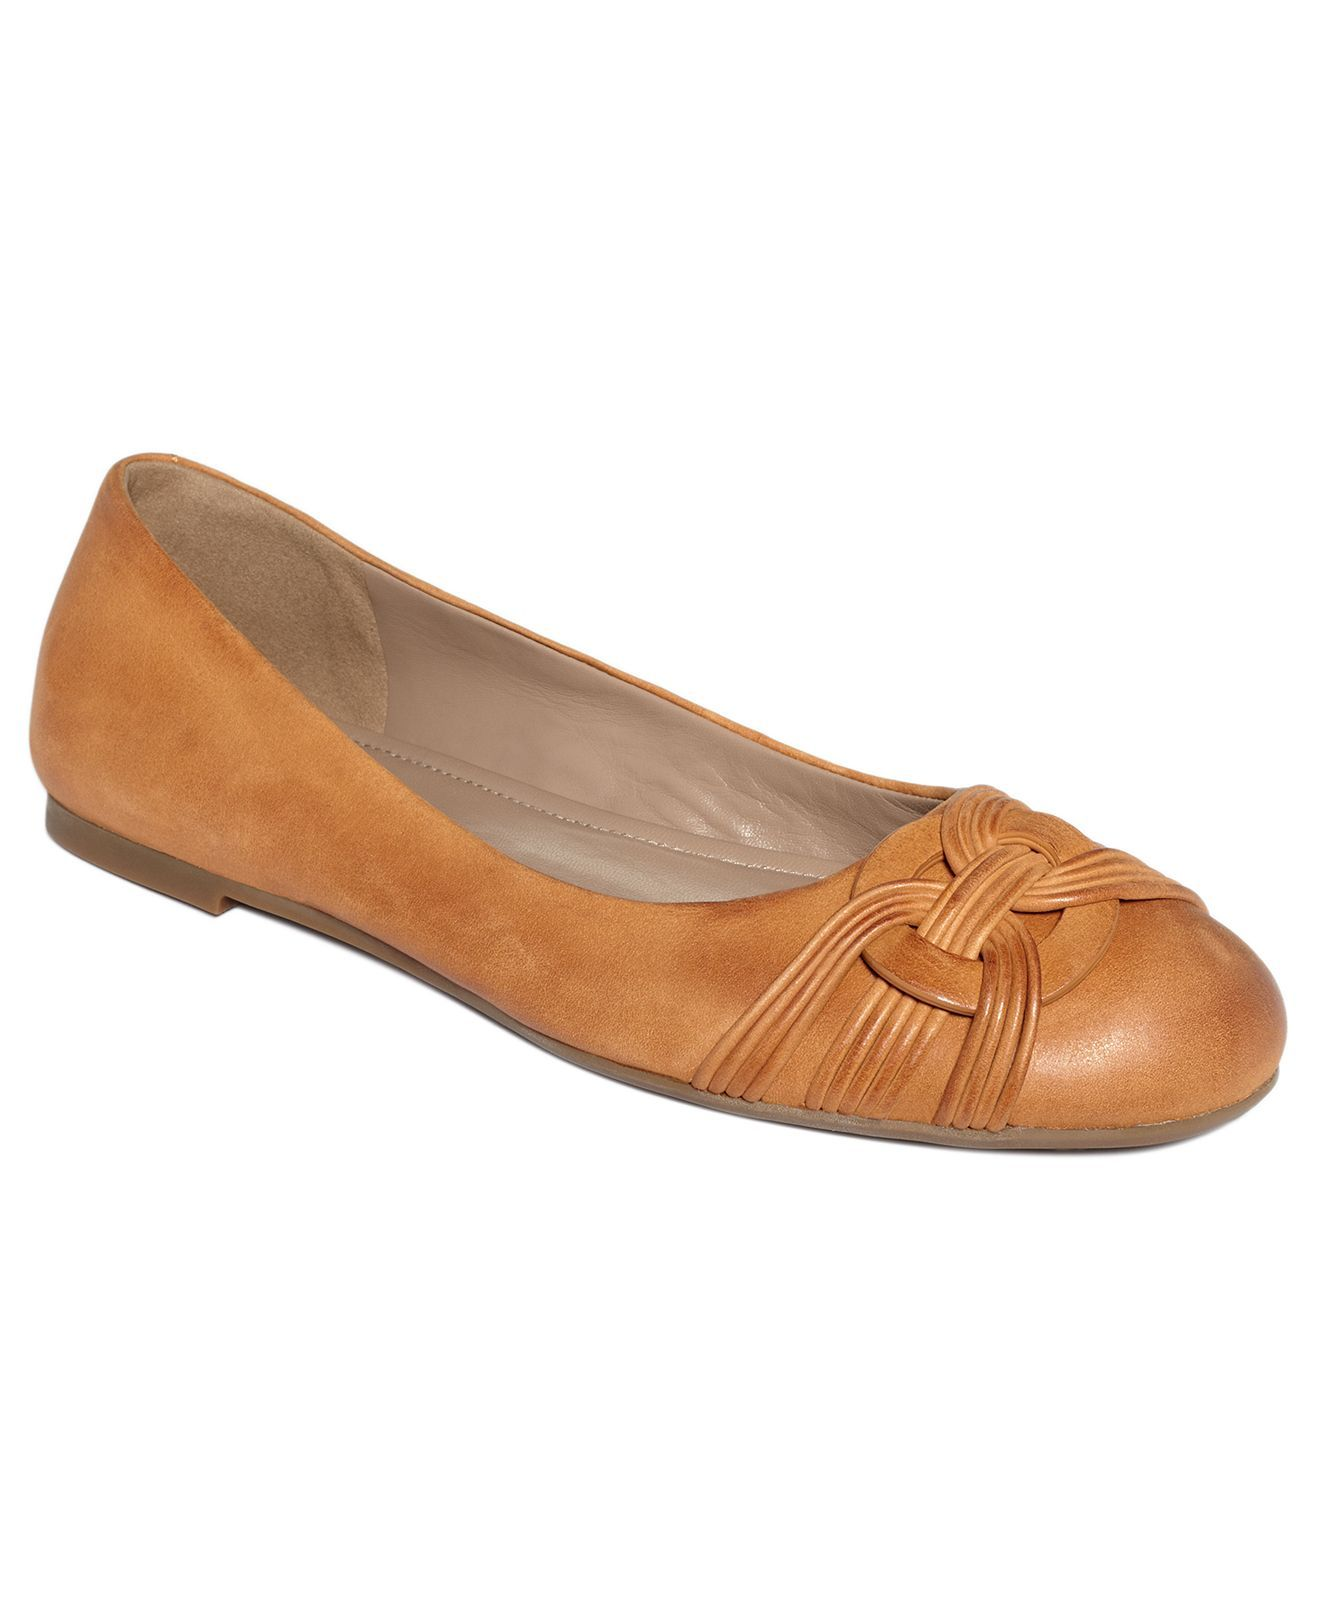 ecco women's kelly ballet flat